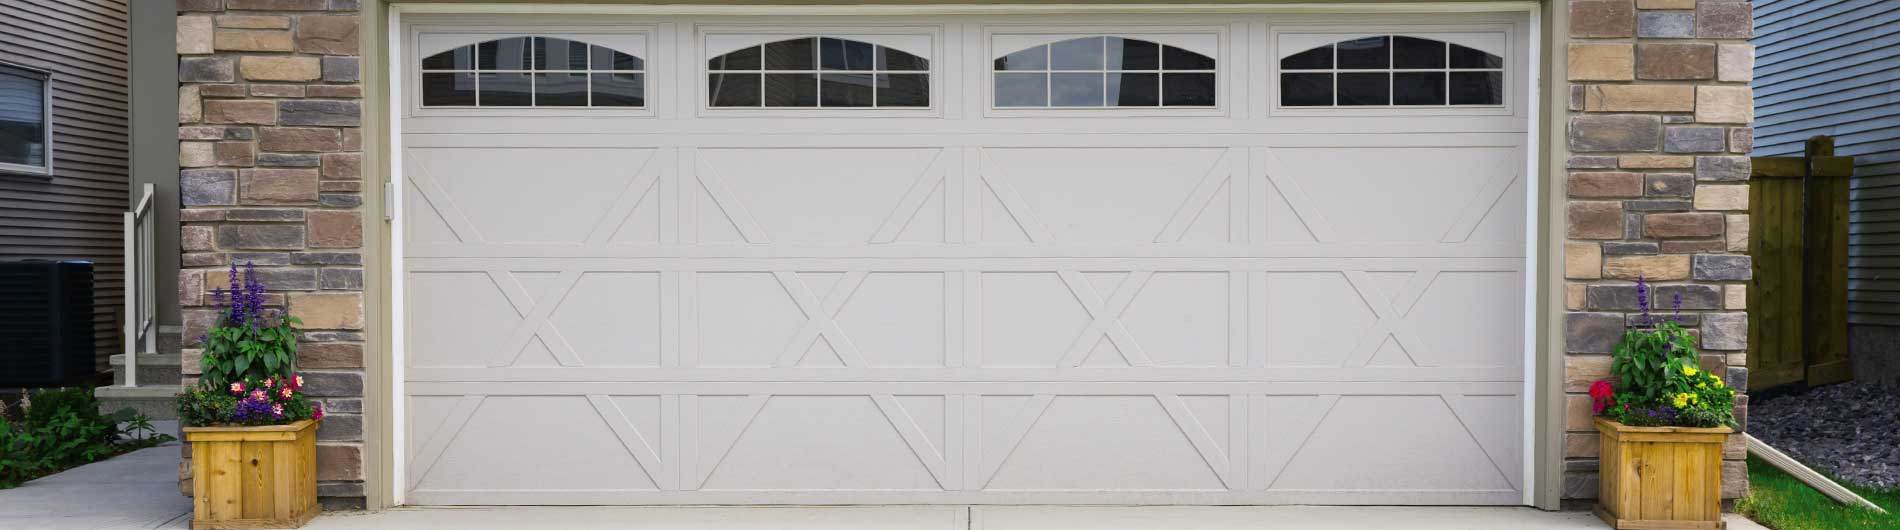 carriage house steel garage door